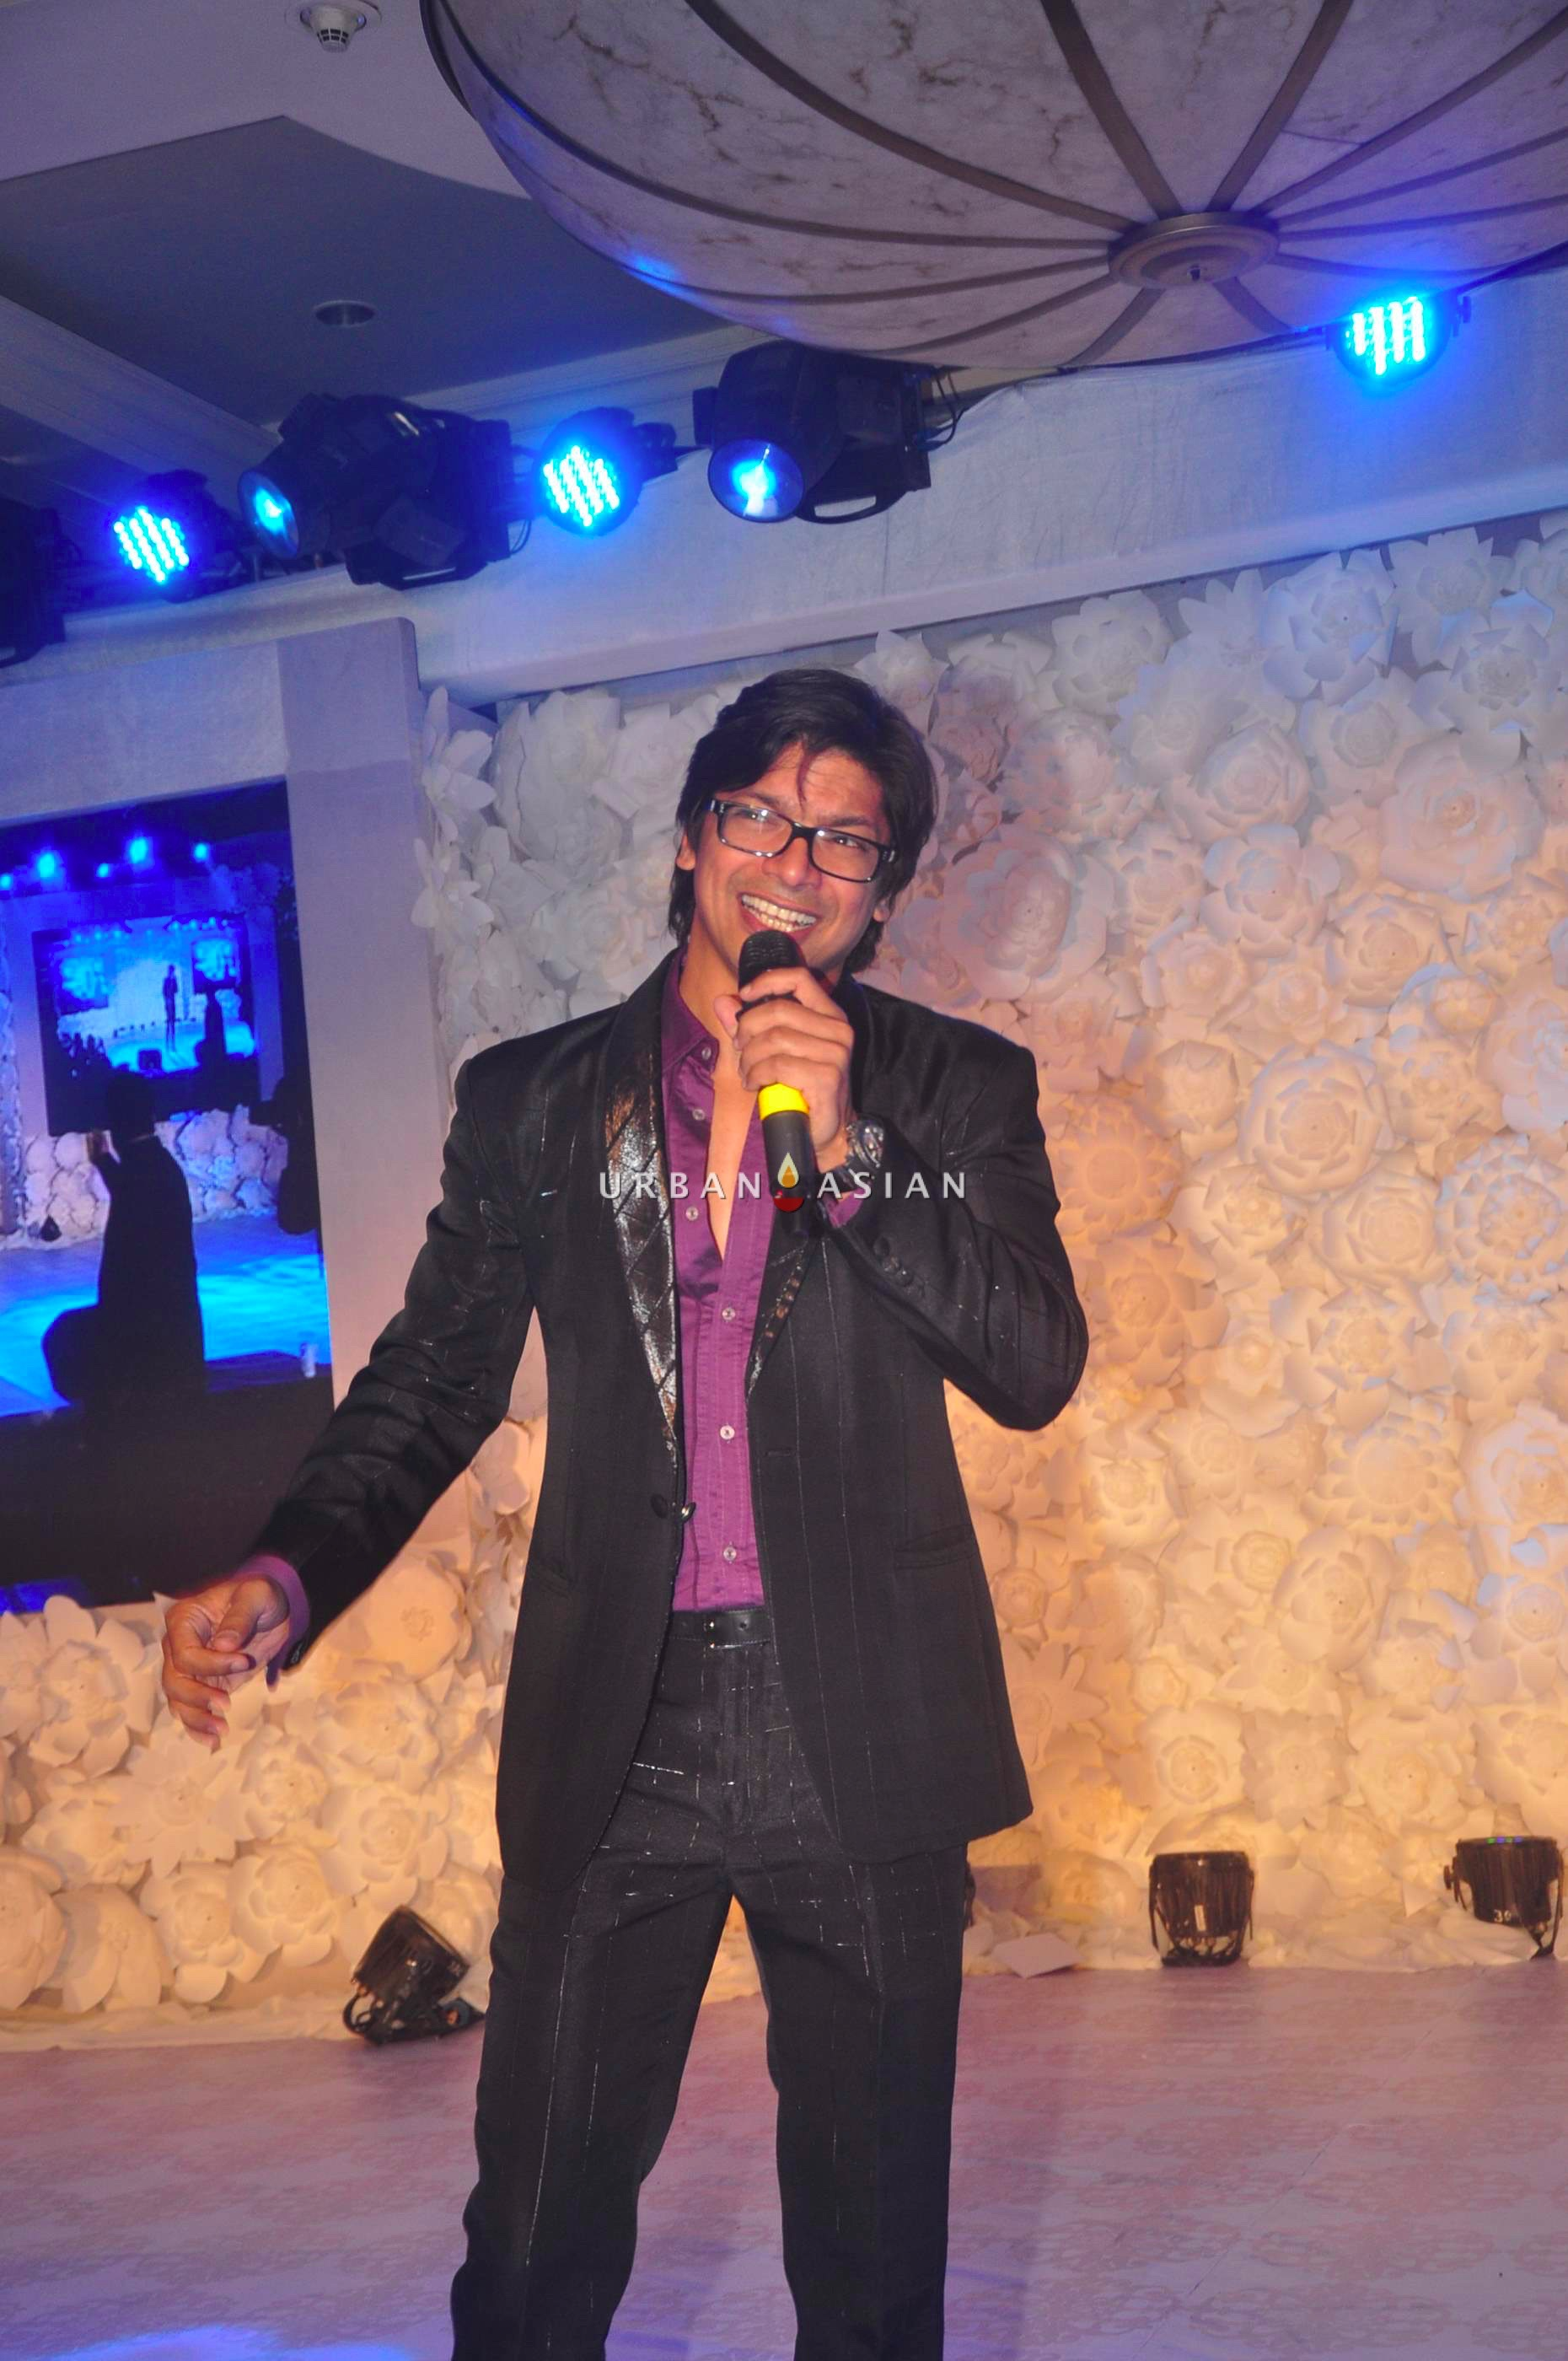 Shan performing live